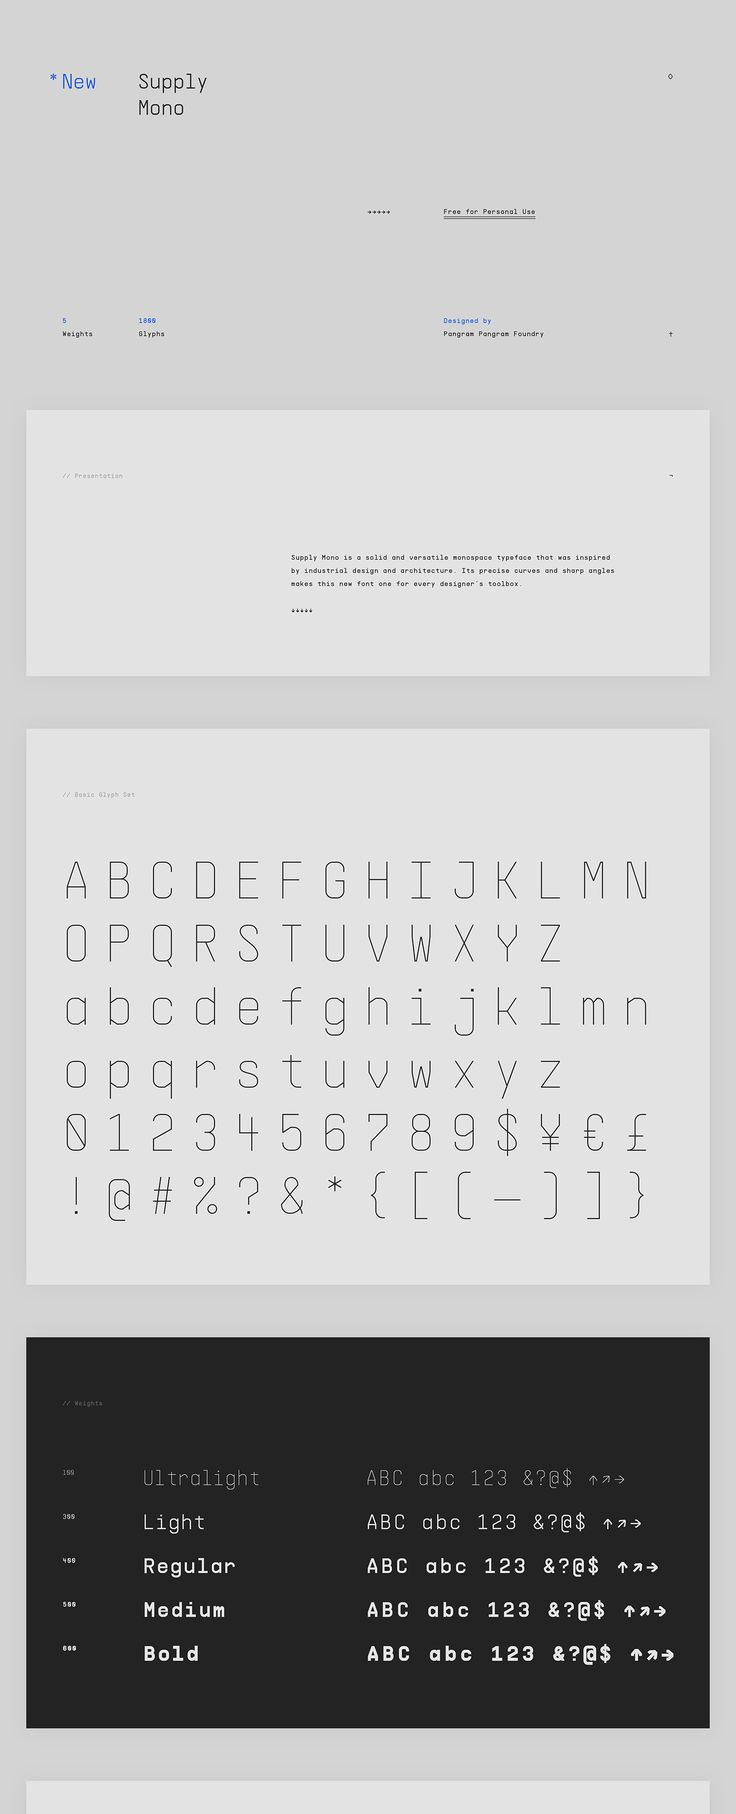 Fresh Free Font Of The Day : Supply Mono